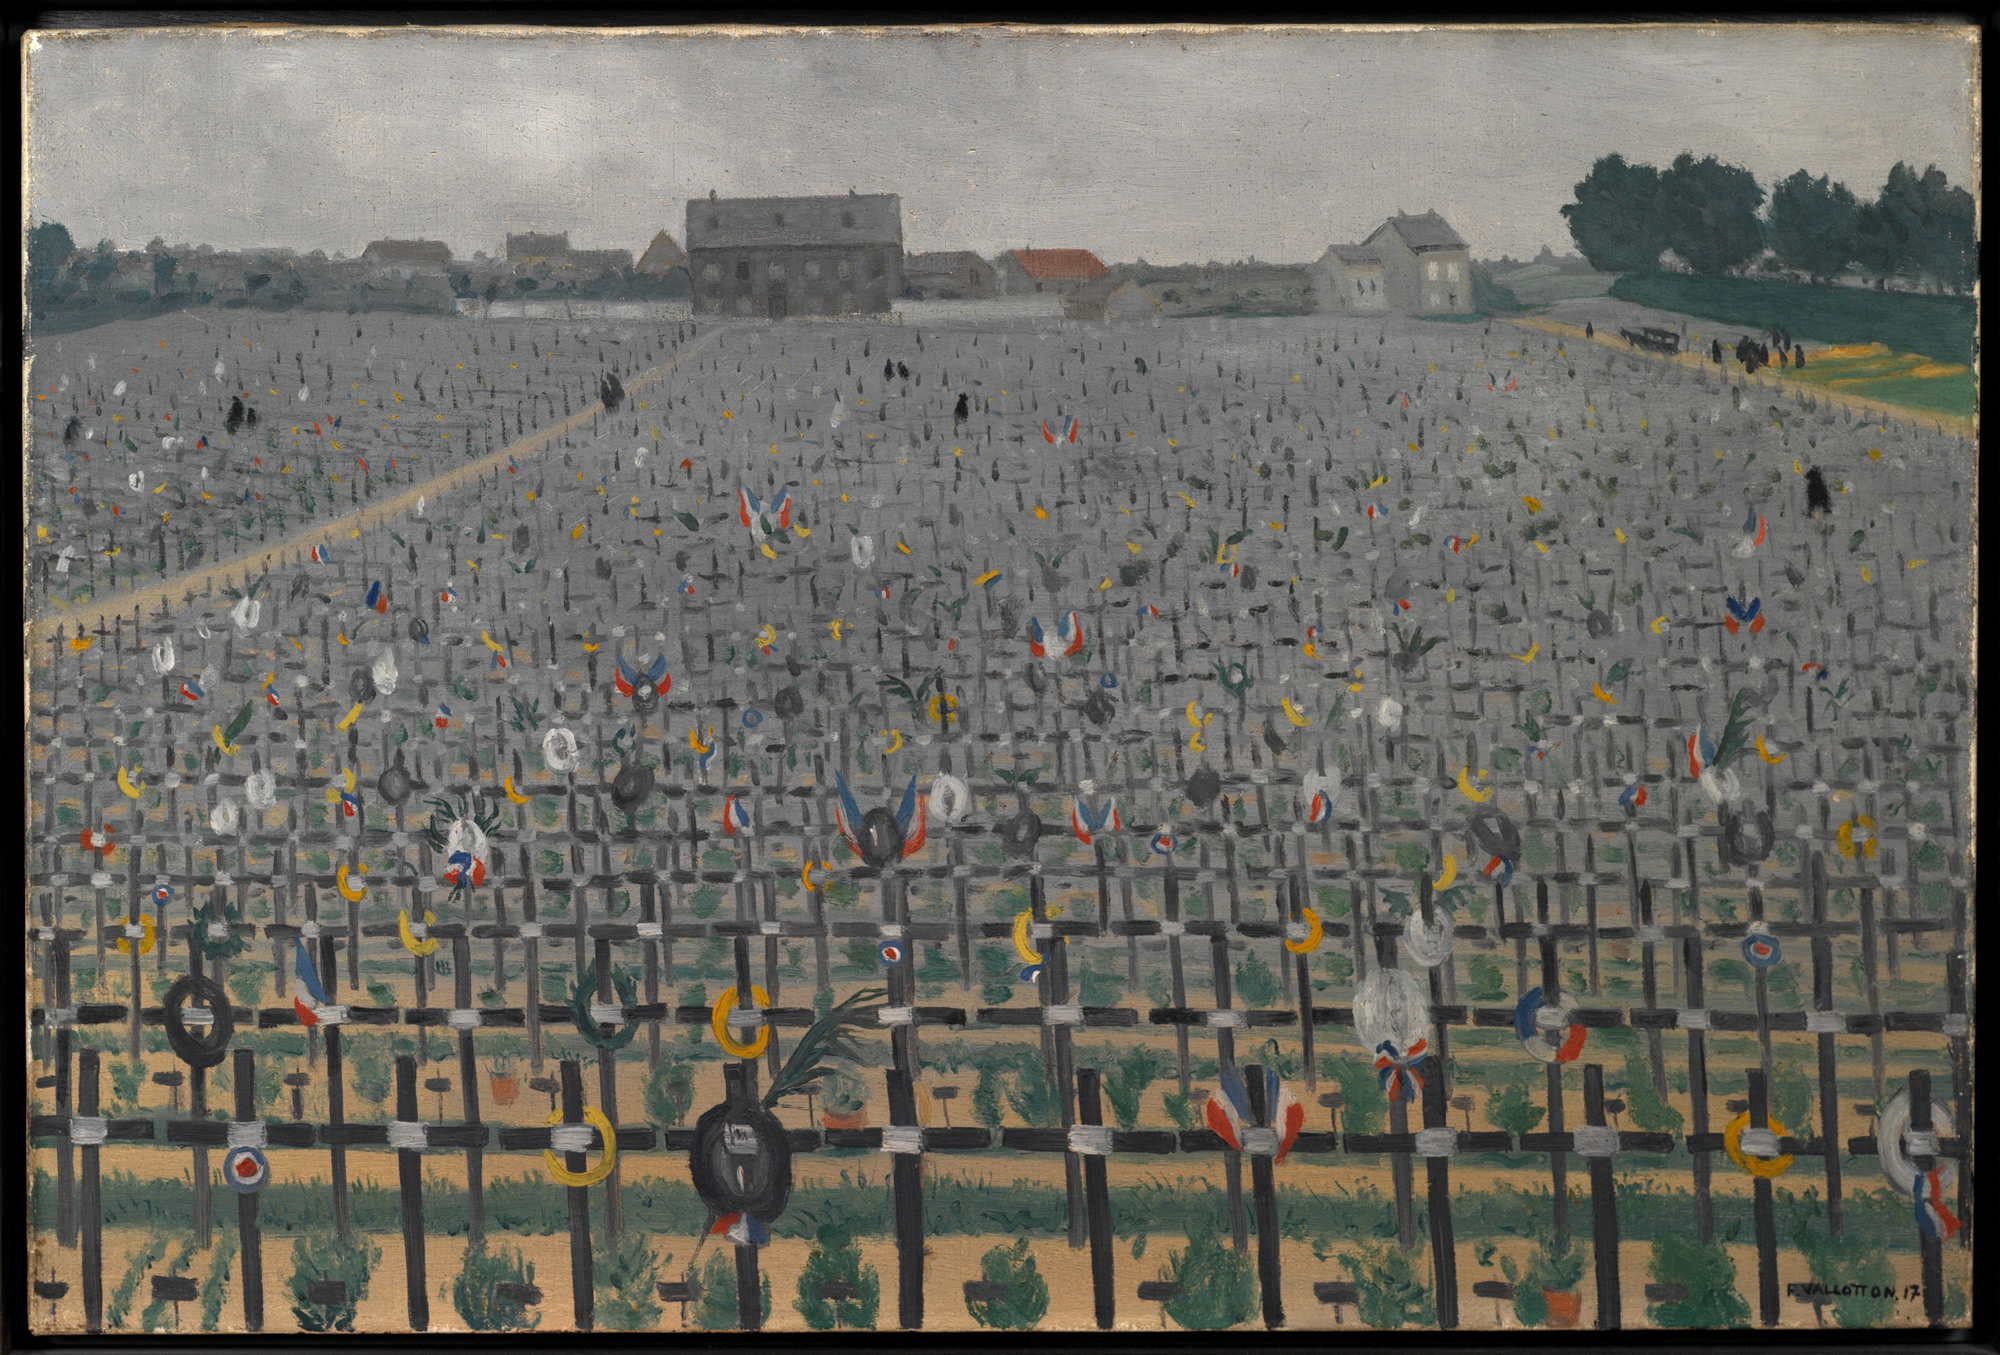 Military cemetery at Châlons-sur-Marne, June 1917